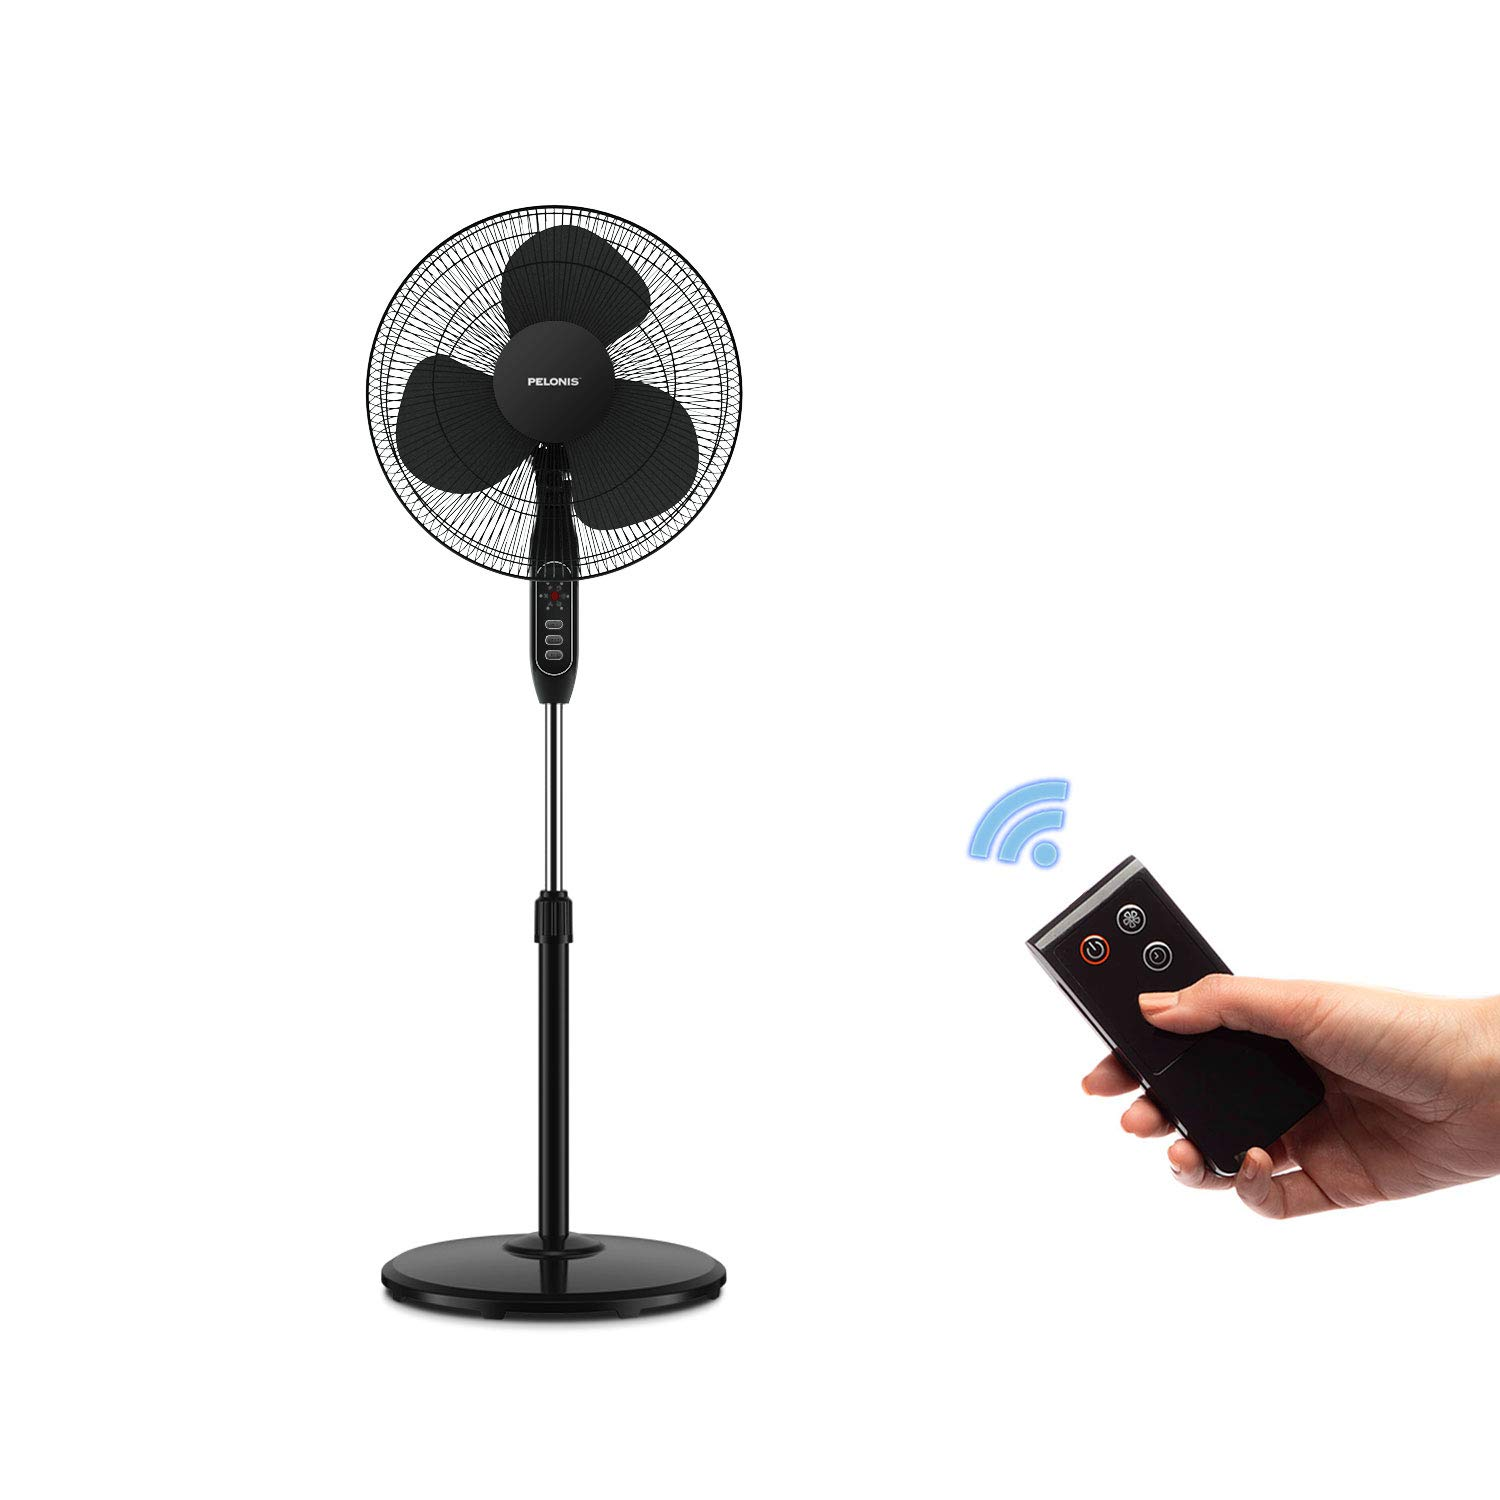 Pelonis 16 3-Speed Oscillating Pedestal Fan with 7-Hour Timer, Remote Control and Adjustable in Height, FS40-16JRB,Black